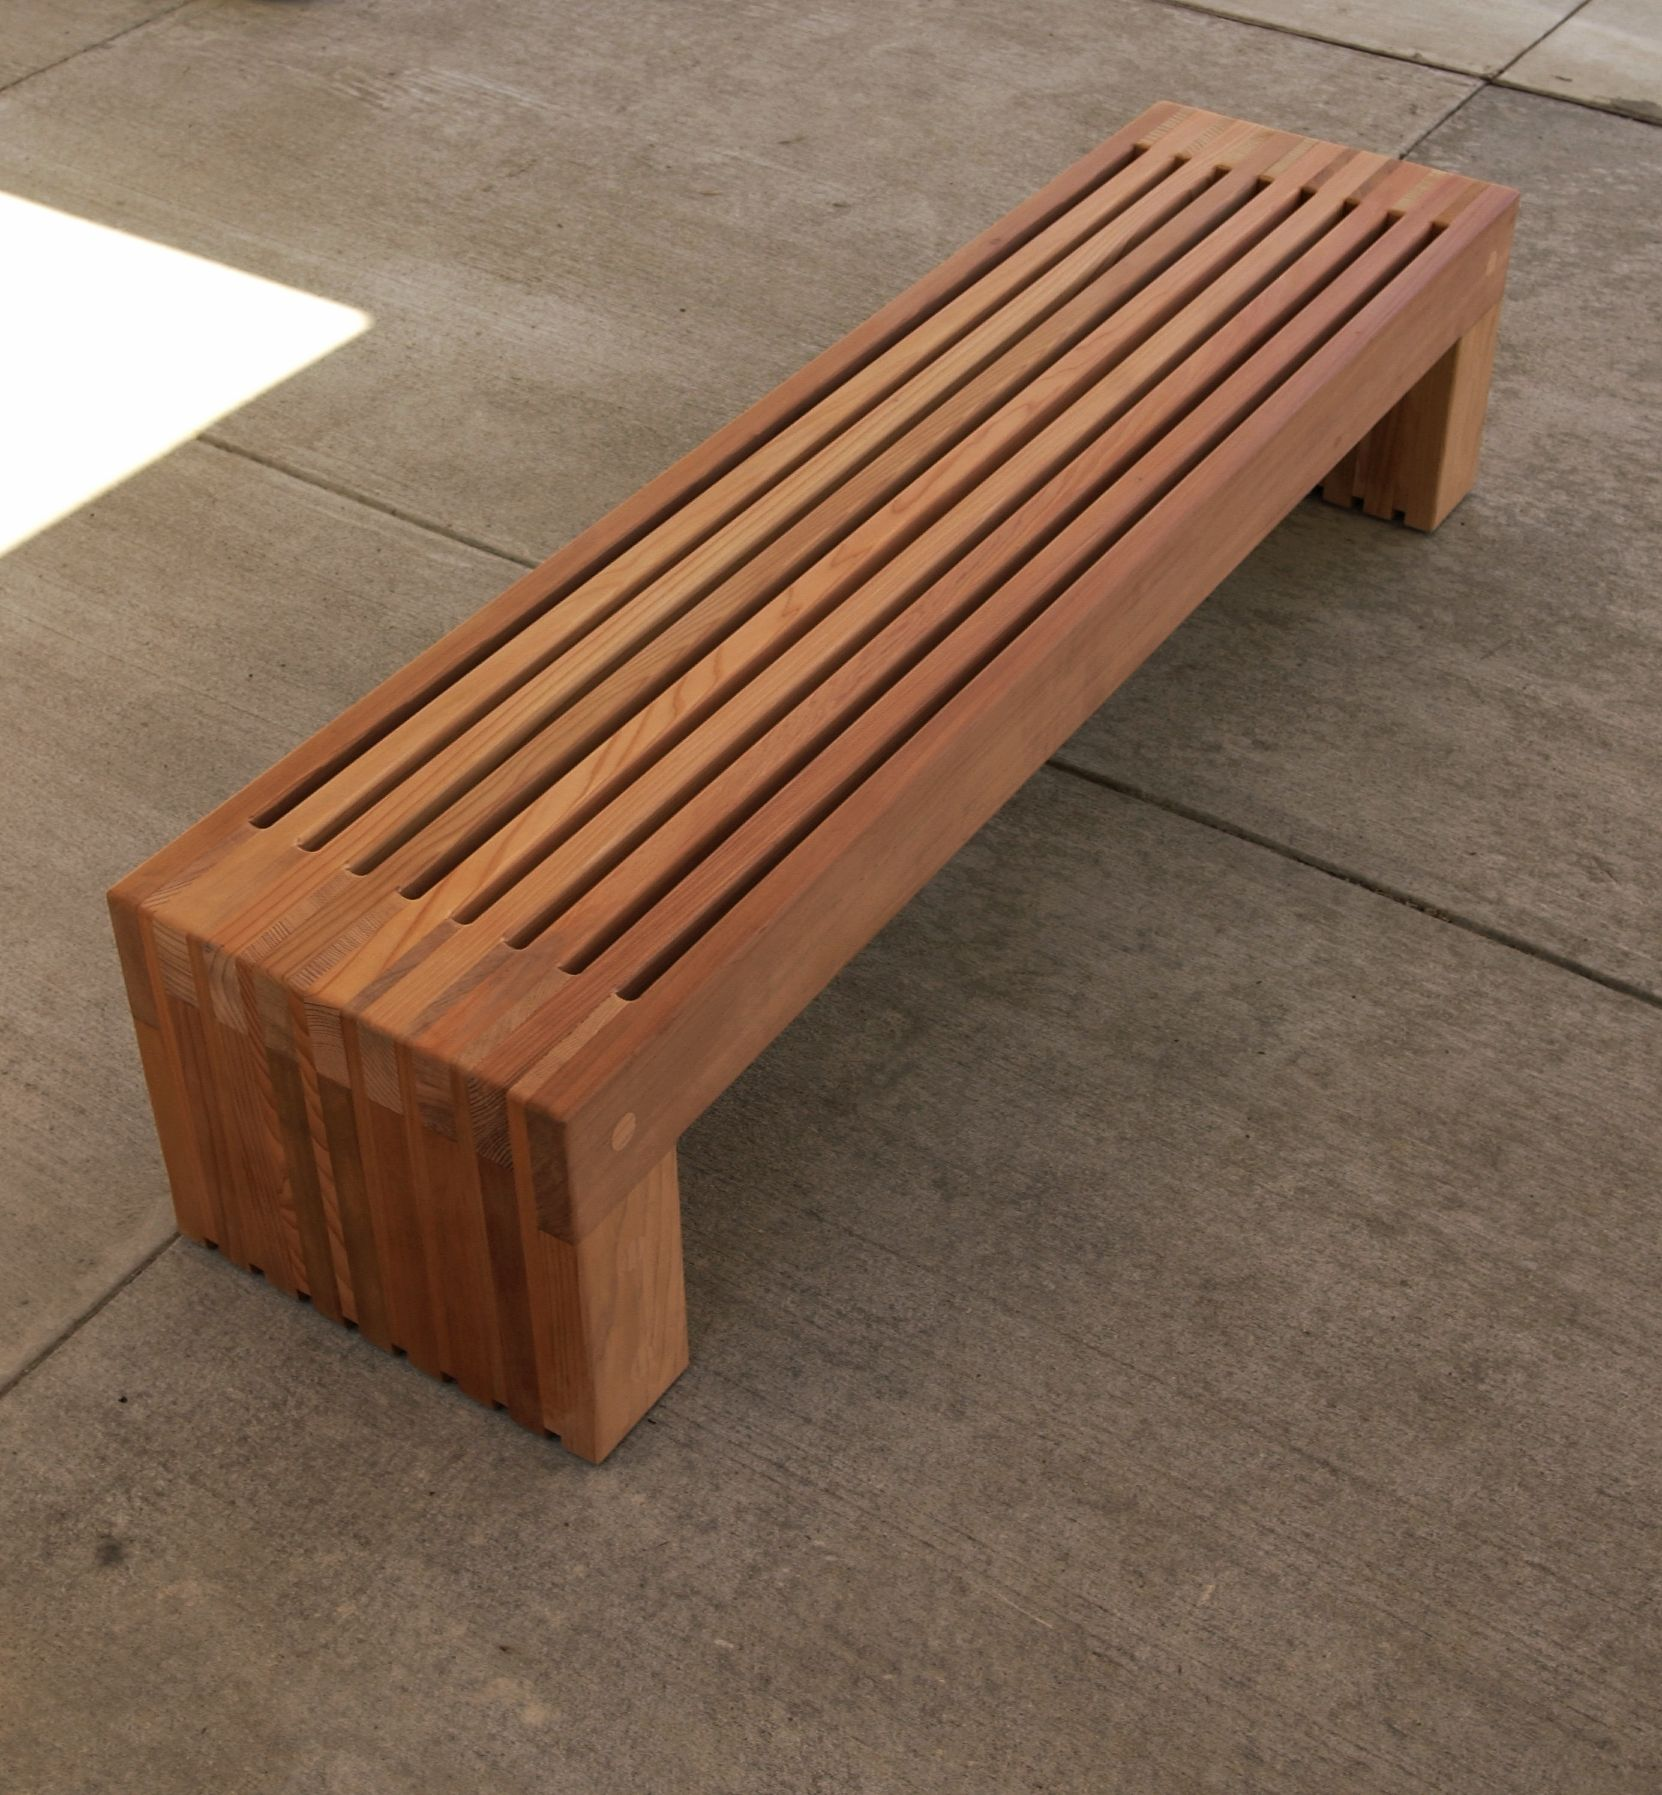 accessories  furnitureenticing build a wooden bench with oak  - find this pin and more on accessories and furniture by dejefreycontemporary wood bench